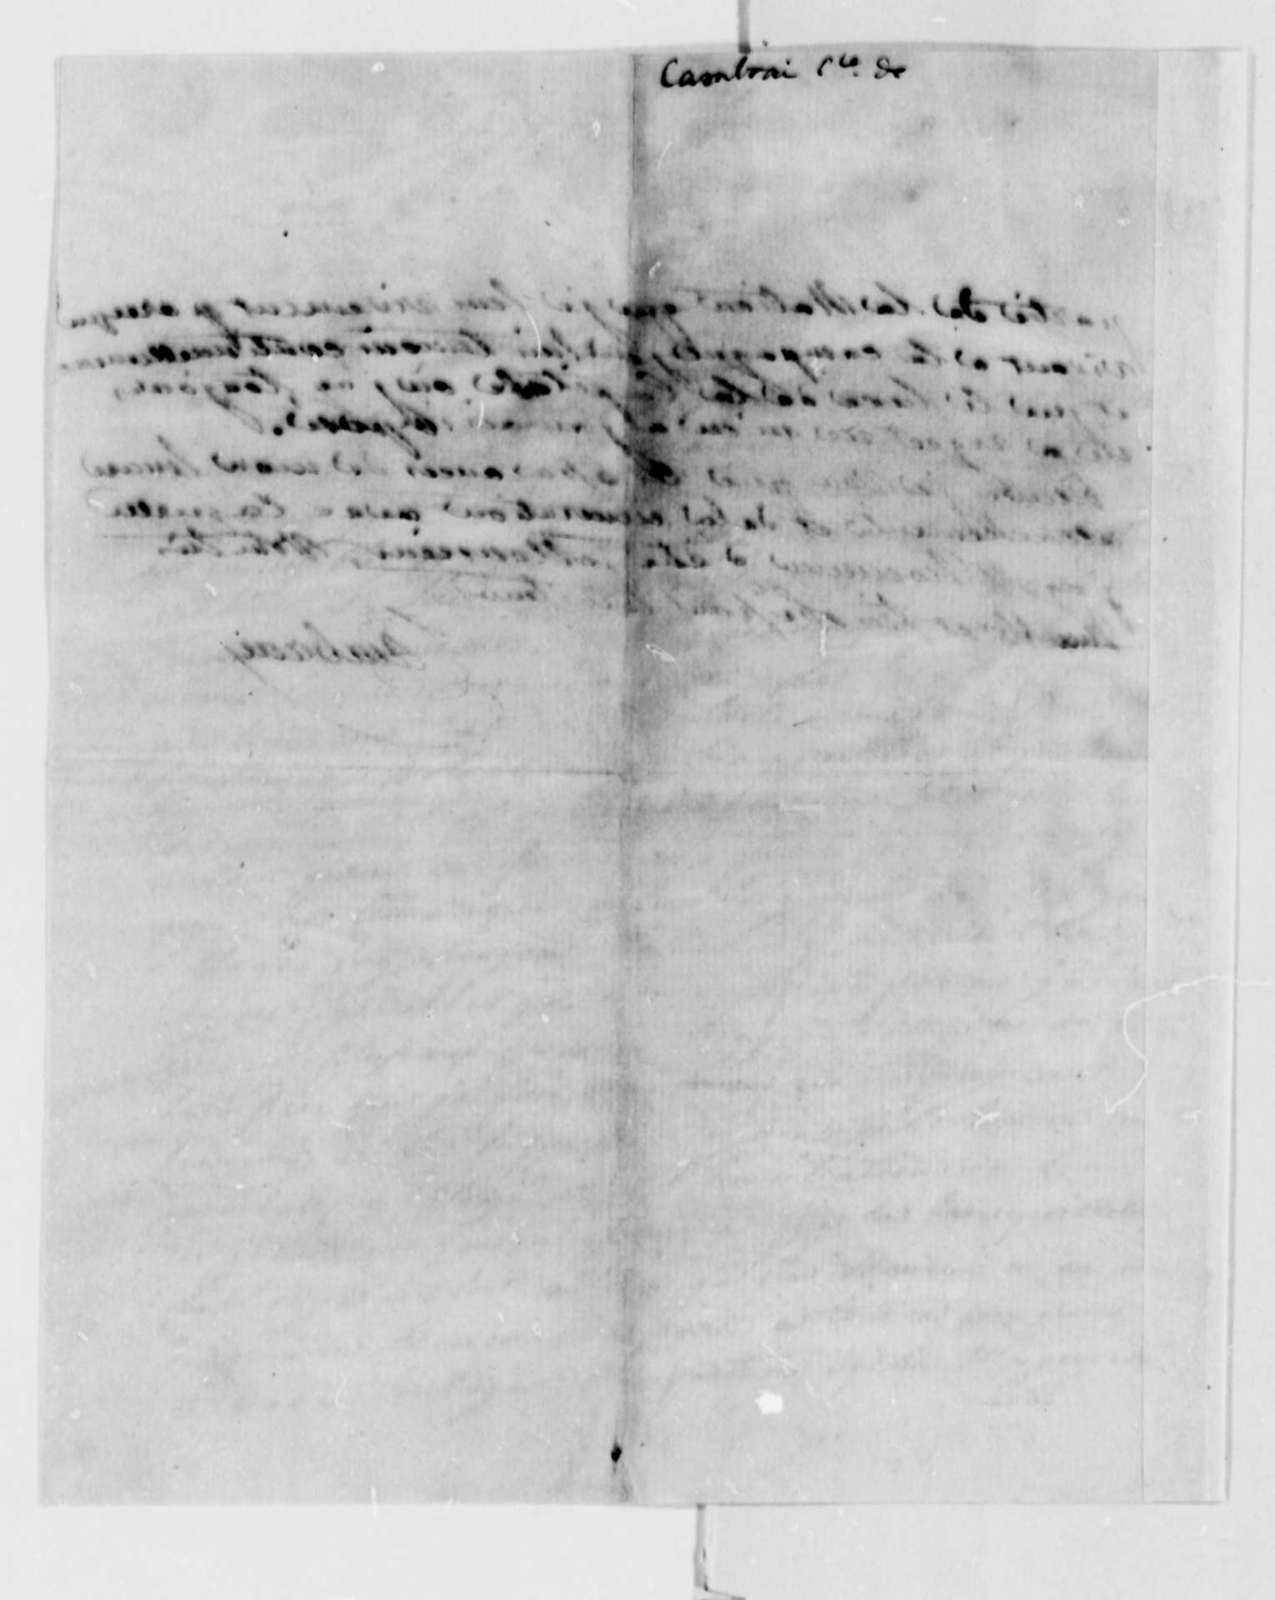 Count de Cambray to Thomas Jefferson, August 17, 1789